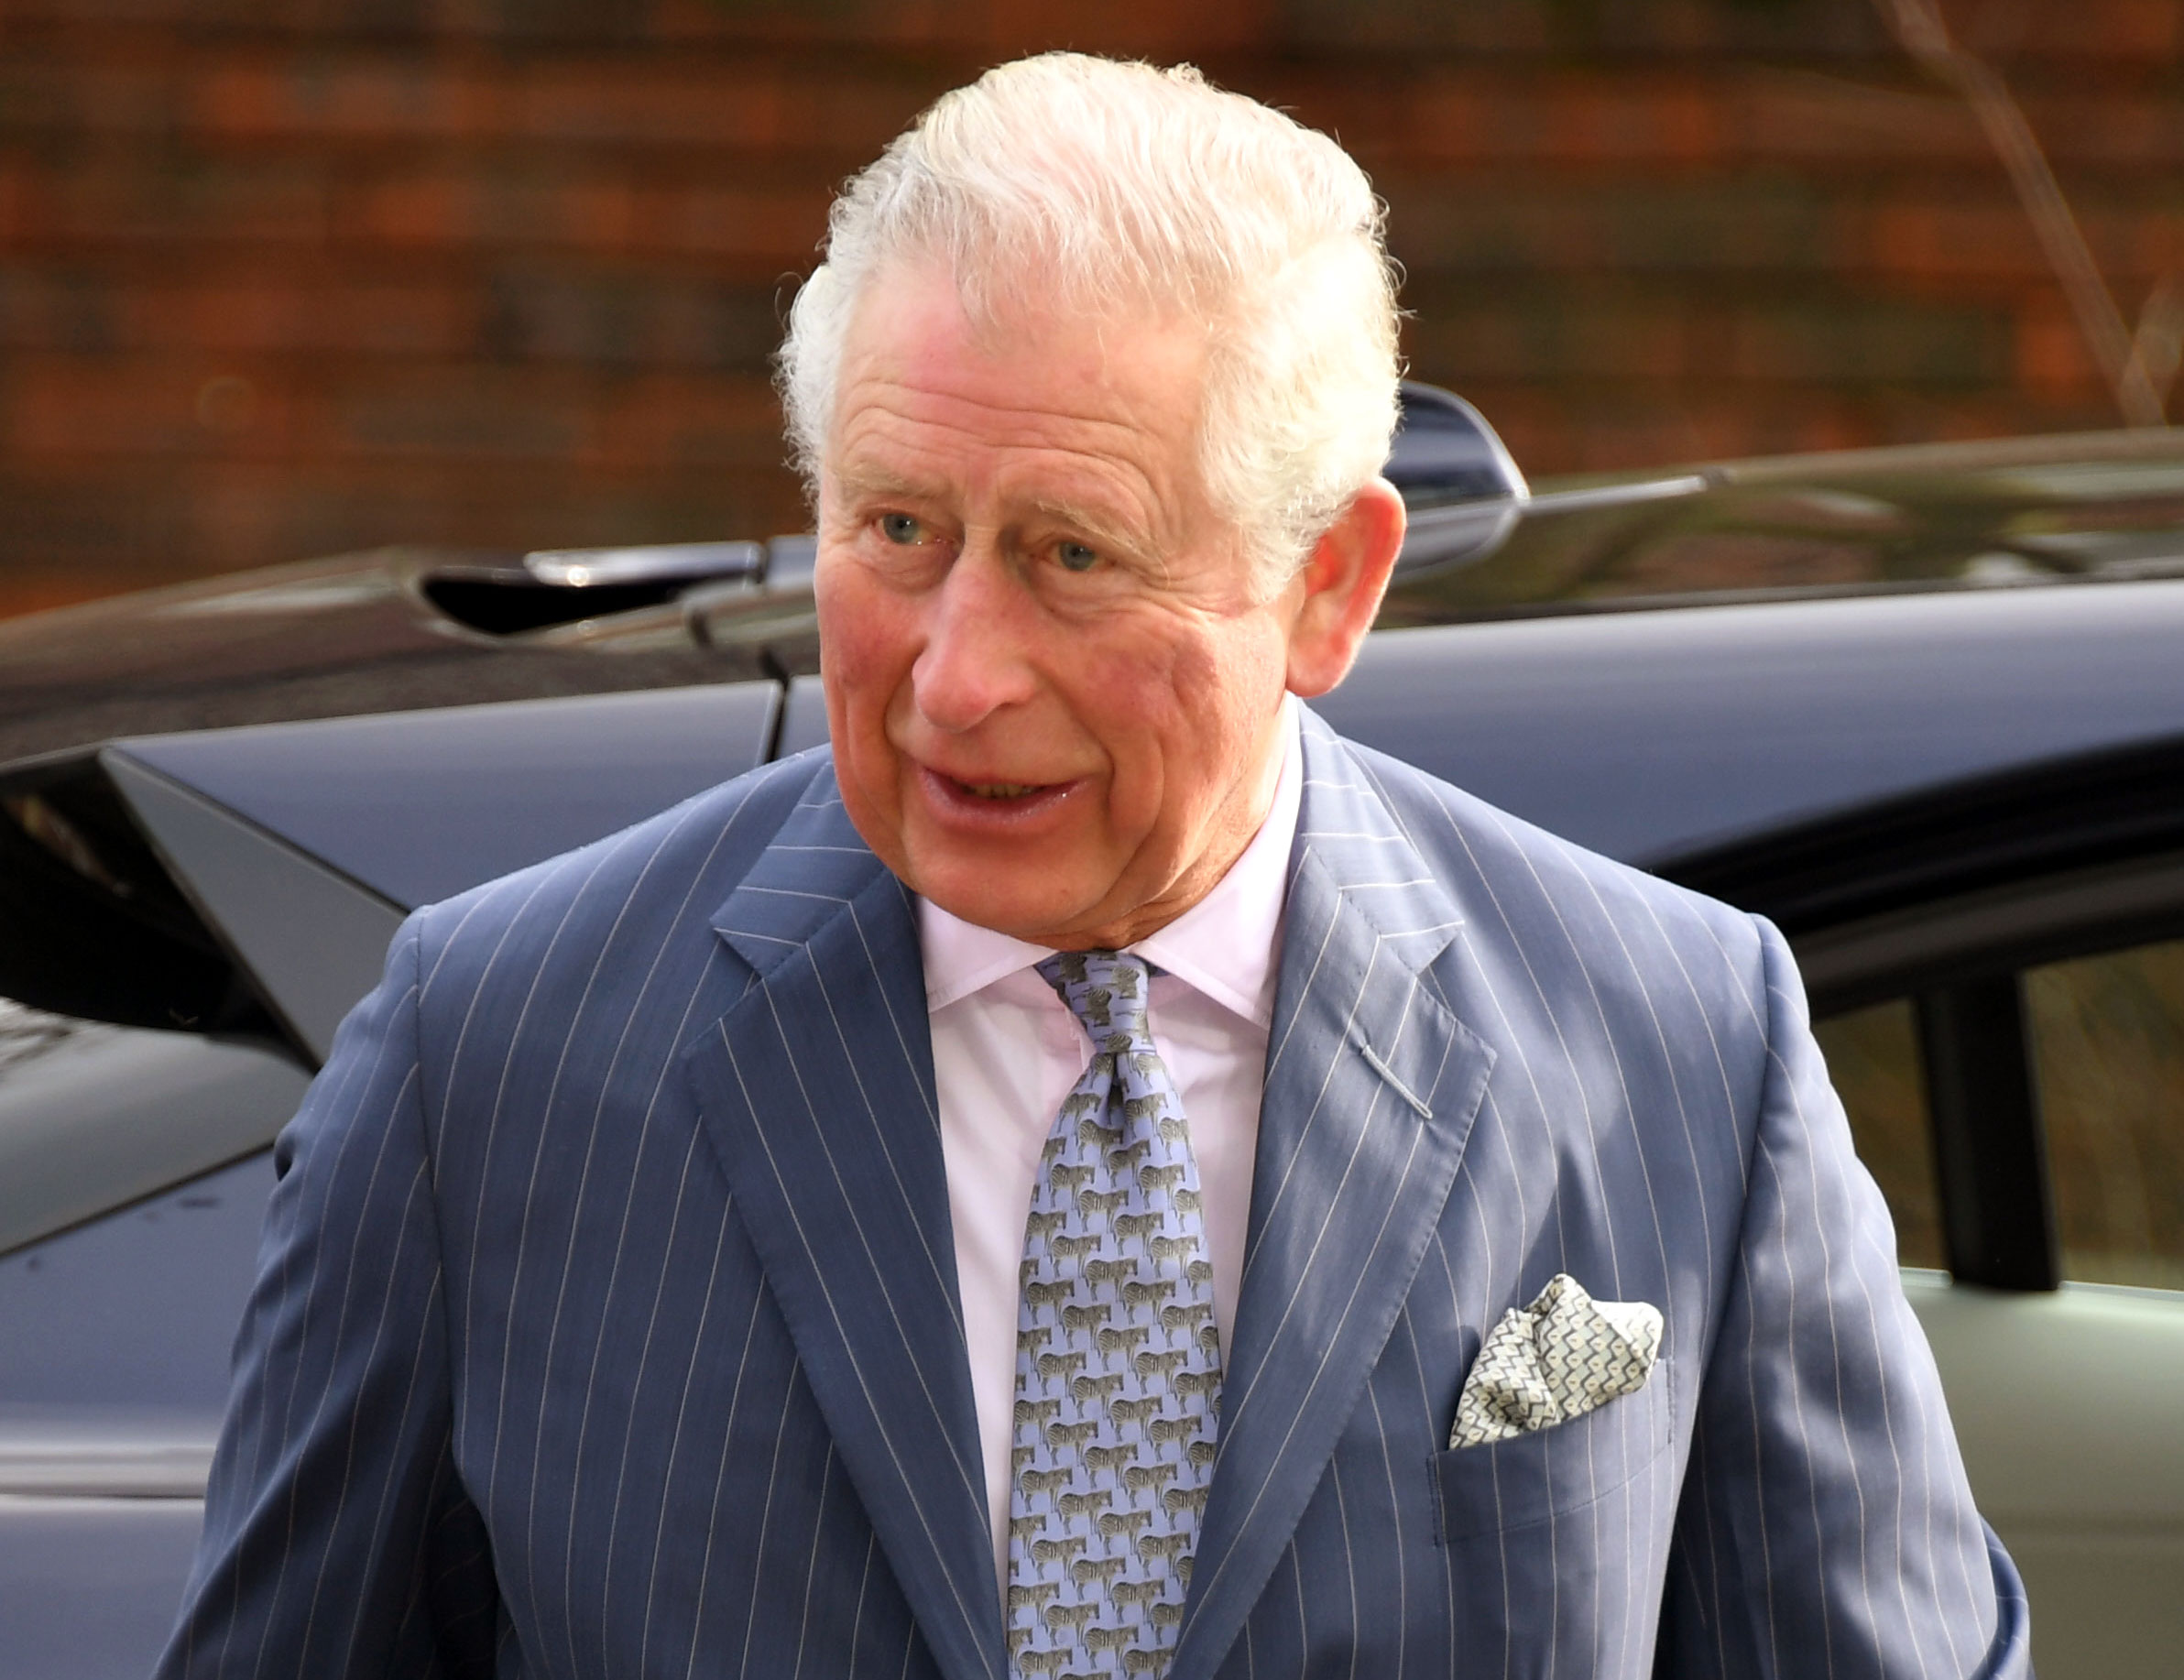 Prince Charles Spotted Without a Seatbelt After Prince Philip's Accident - Prince Charles, Prince of Wales arrives to visit the Kensington Aldridge Academy where he also met with representatives of the Teach First charity on February 13, 2019 in London, England.